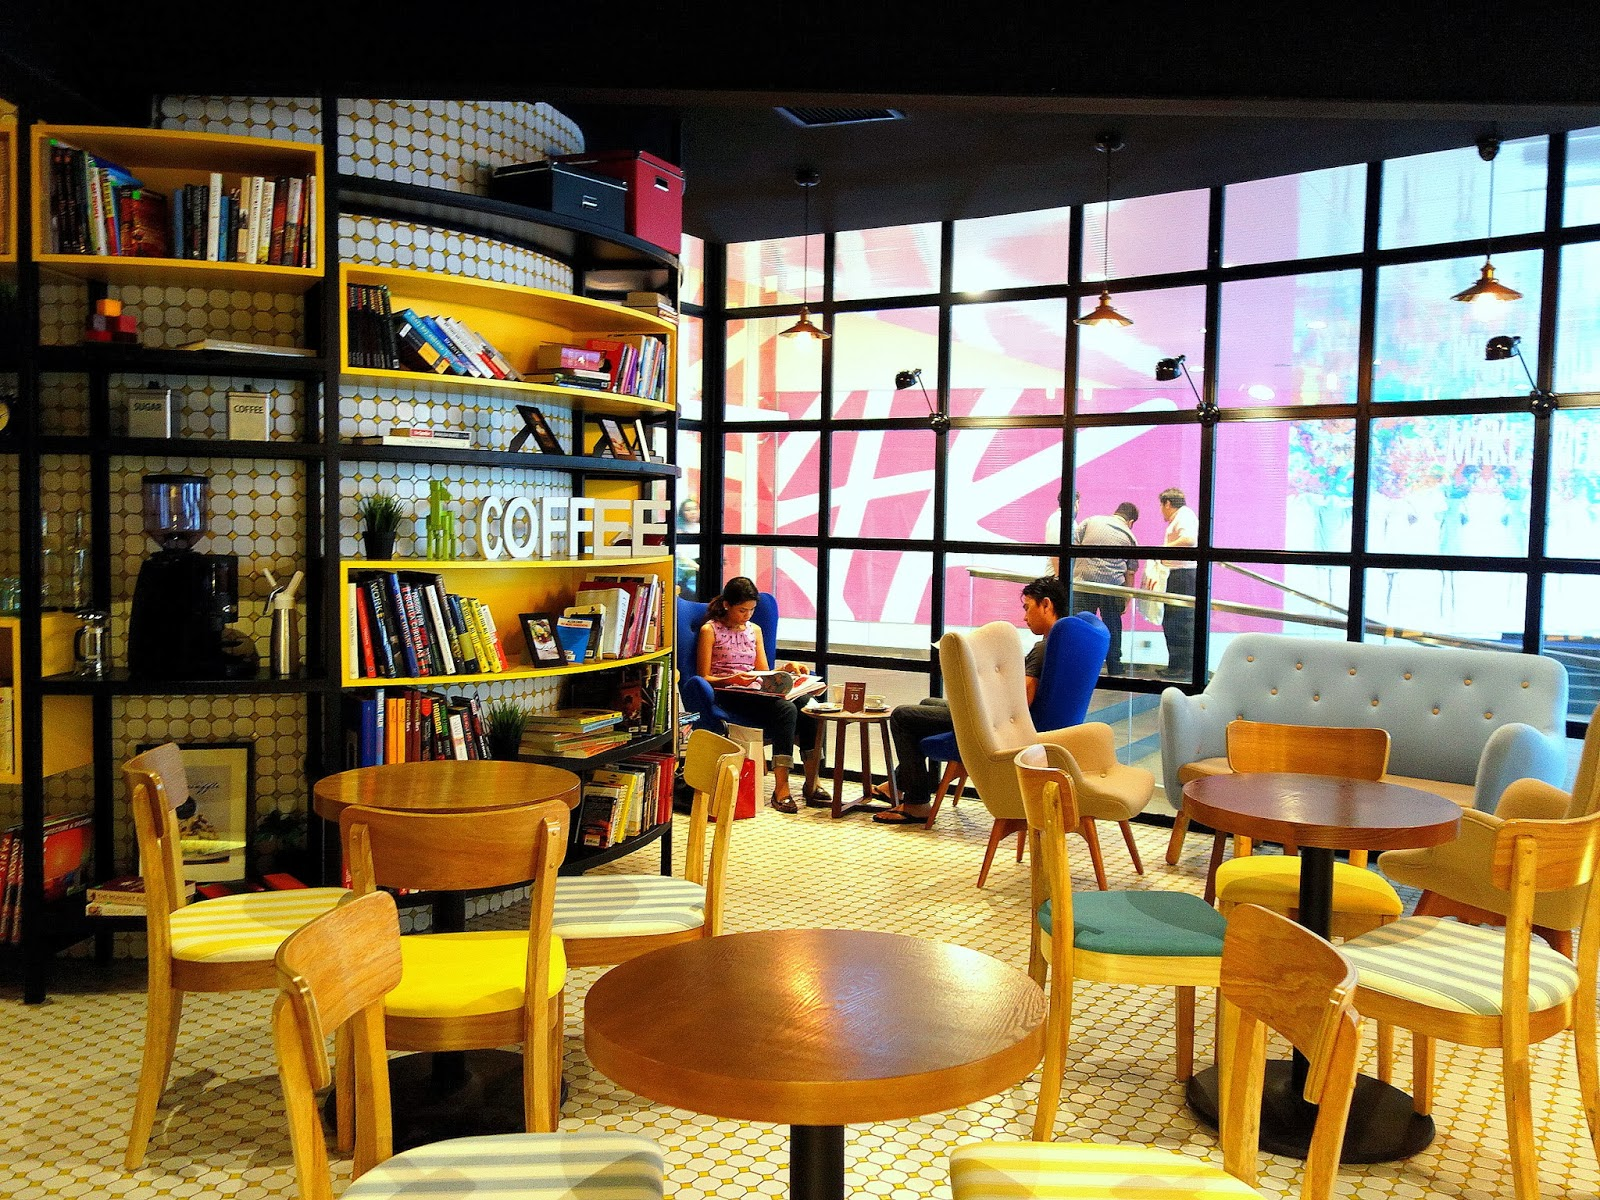 17 Kl Cafe Interior Designs To Recreate At Home 37 Photos